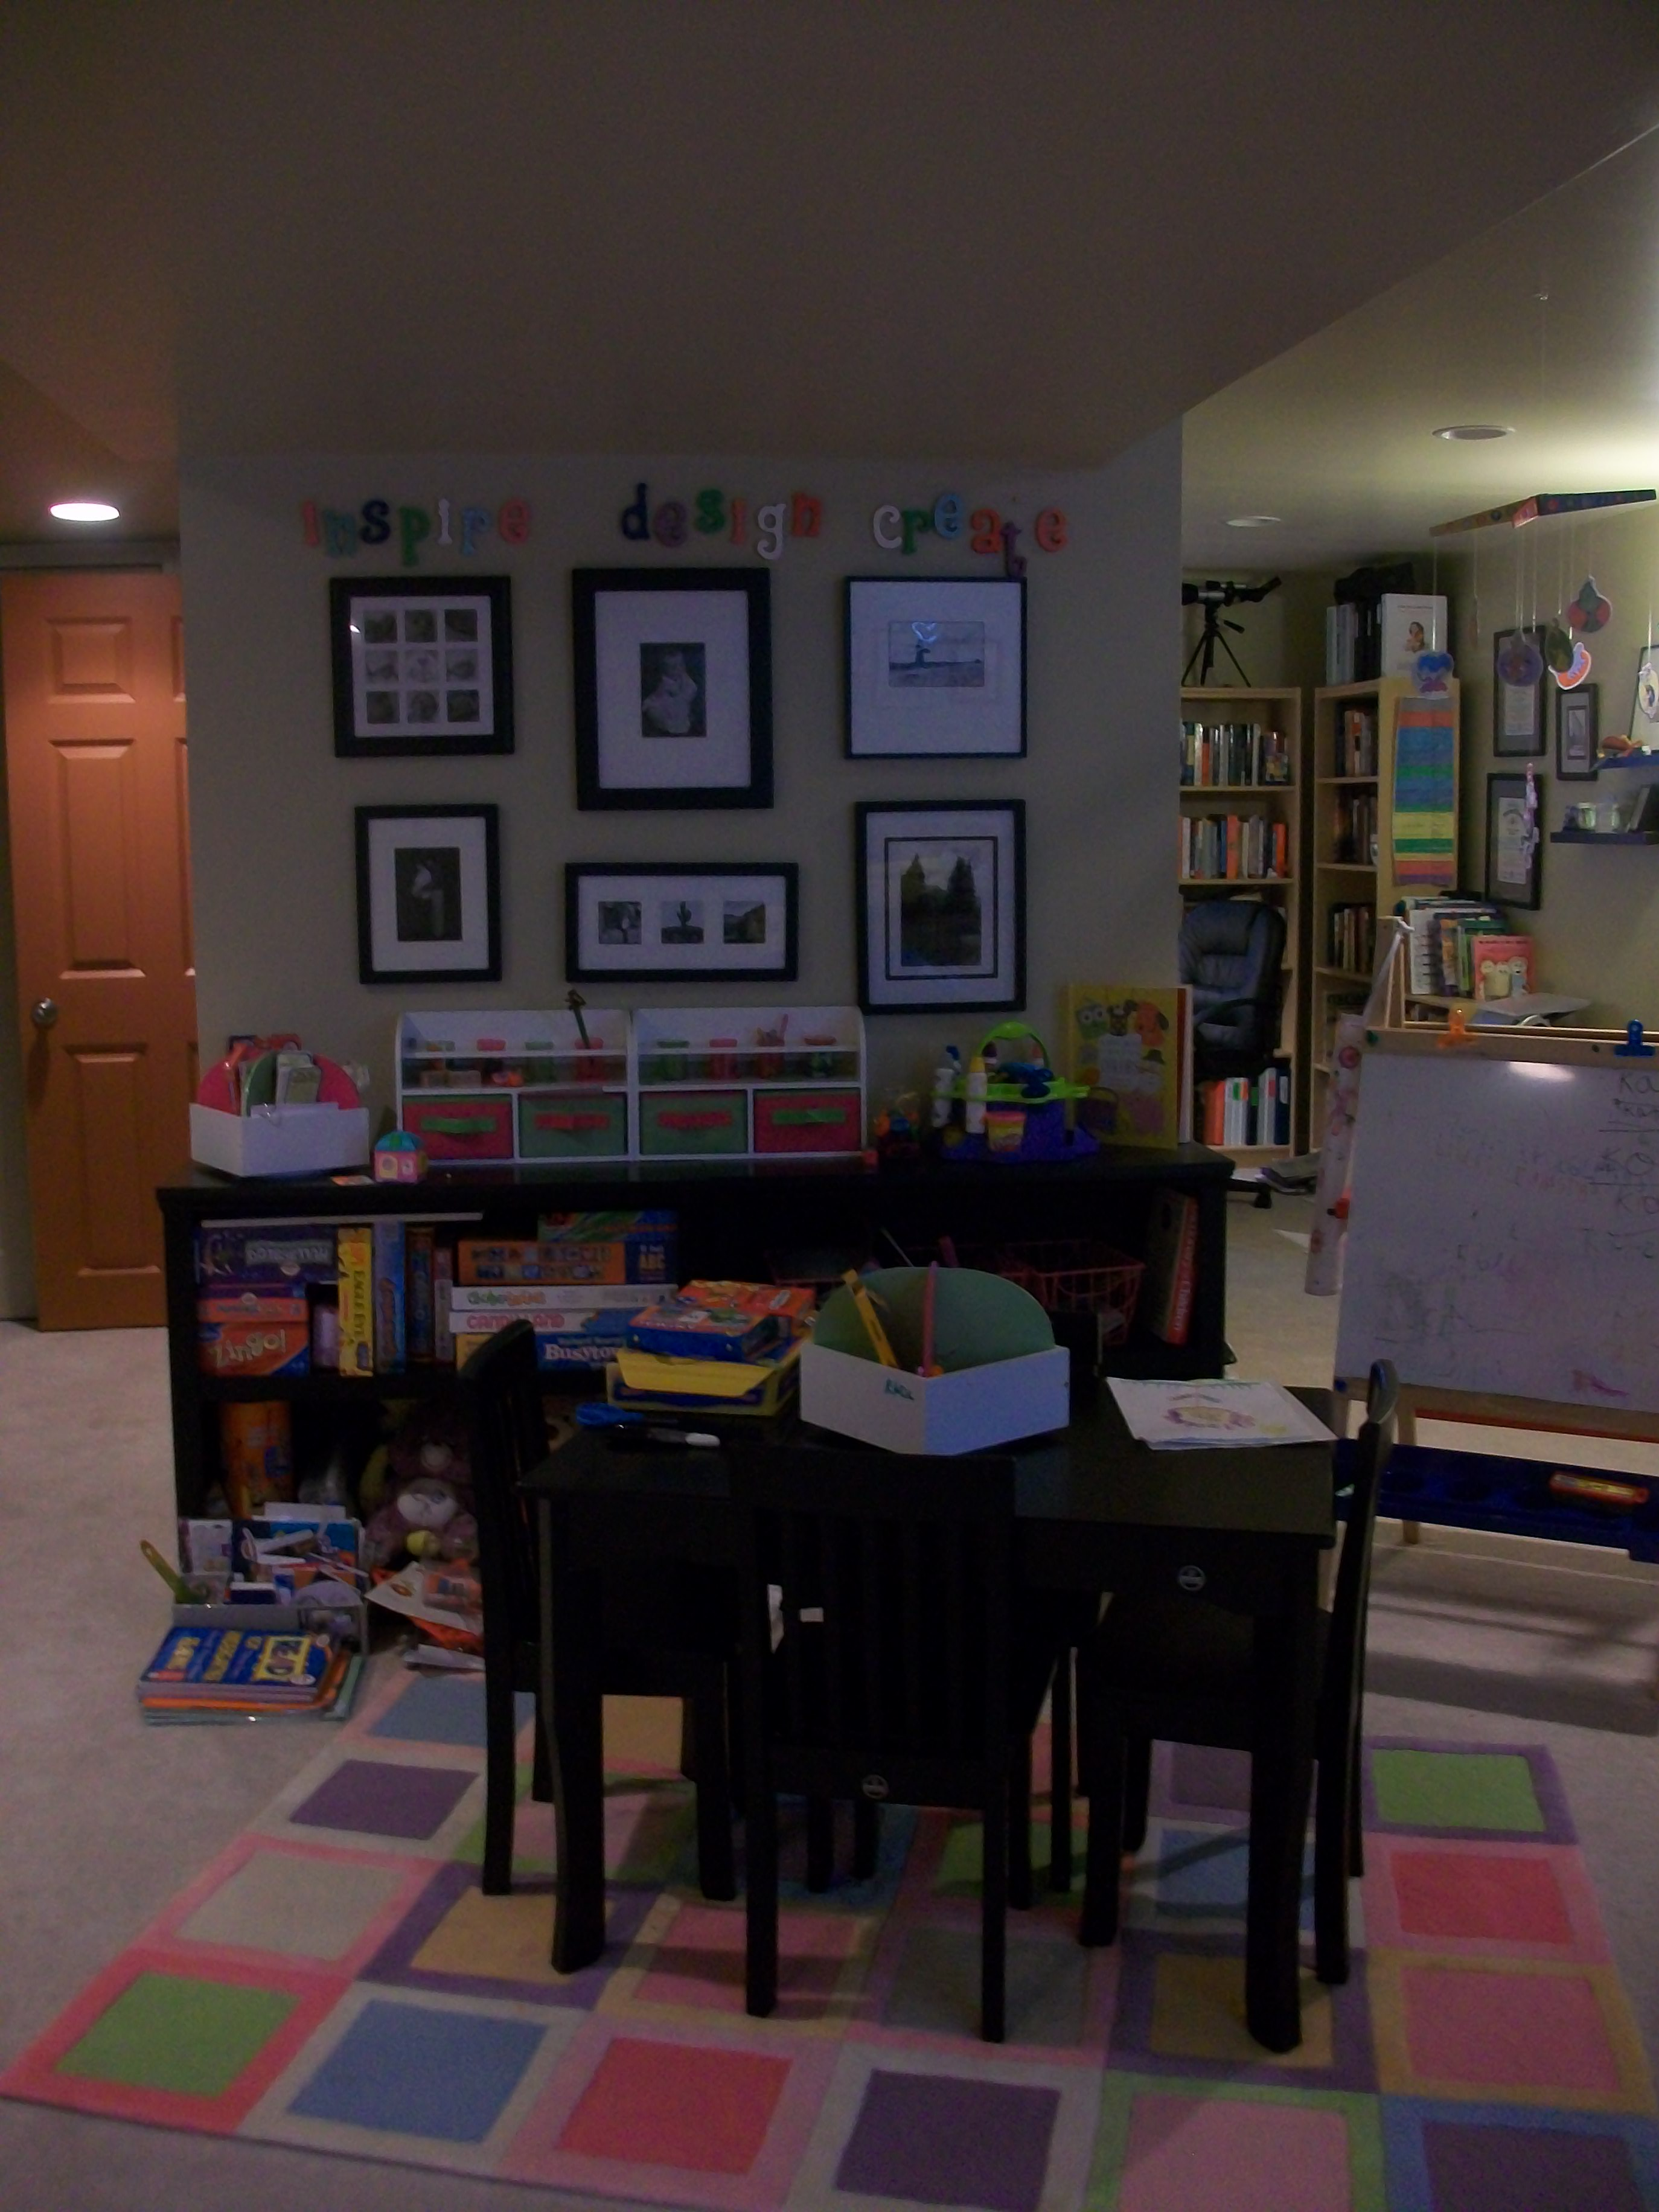 Kids Study Room Design: Cute & Simple: Designing A Kid-friendly Study Area